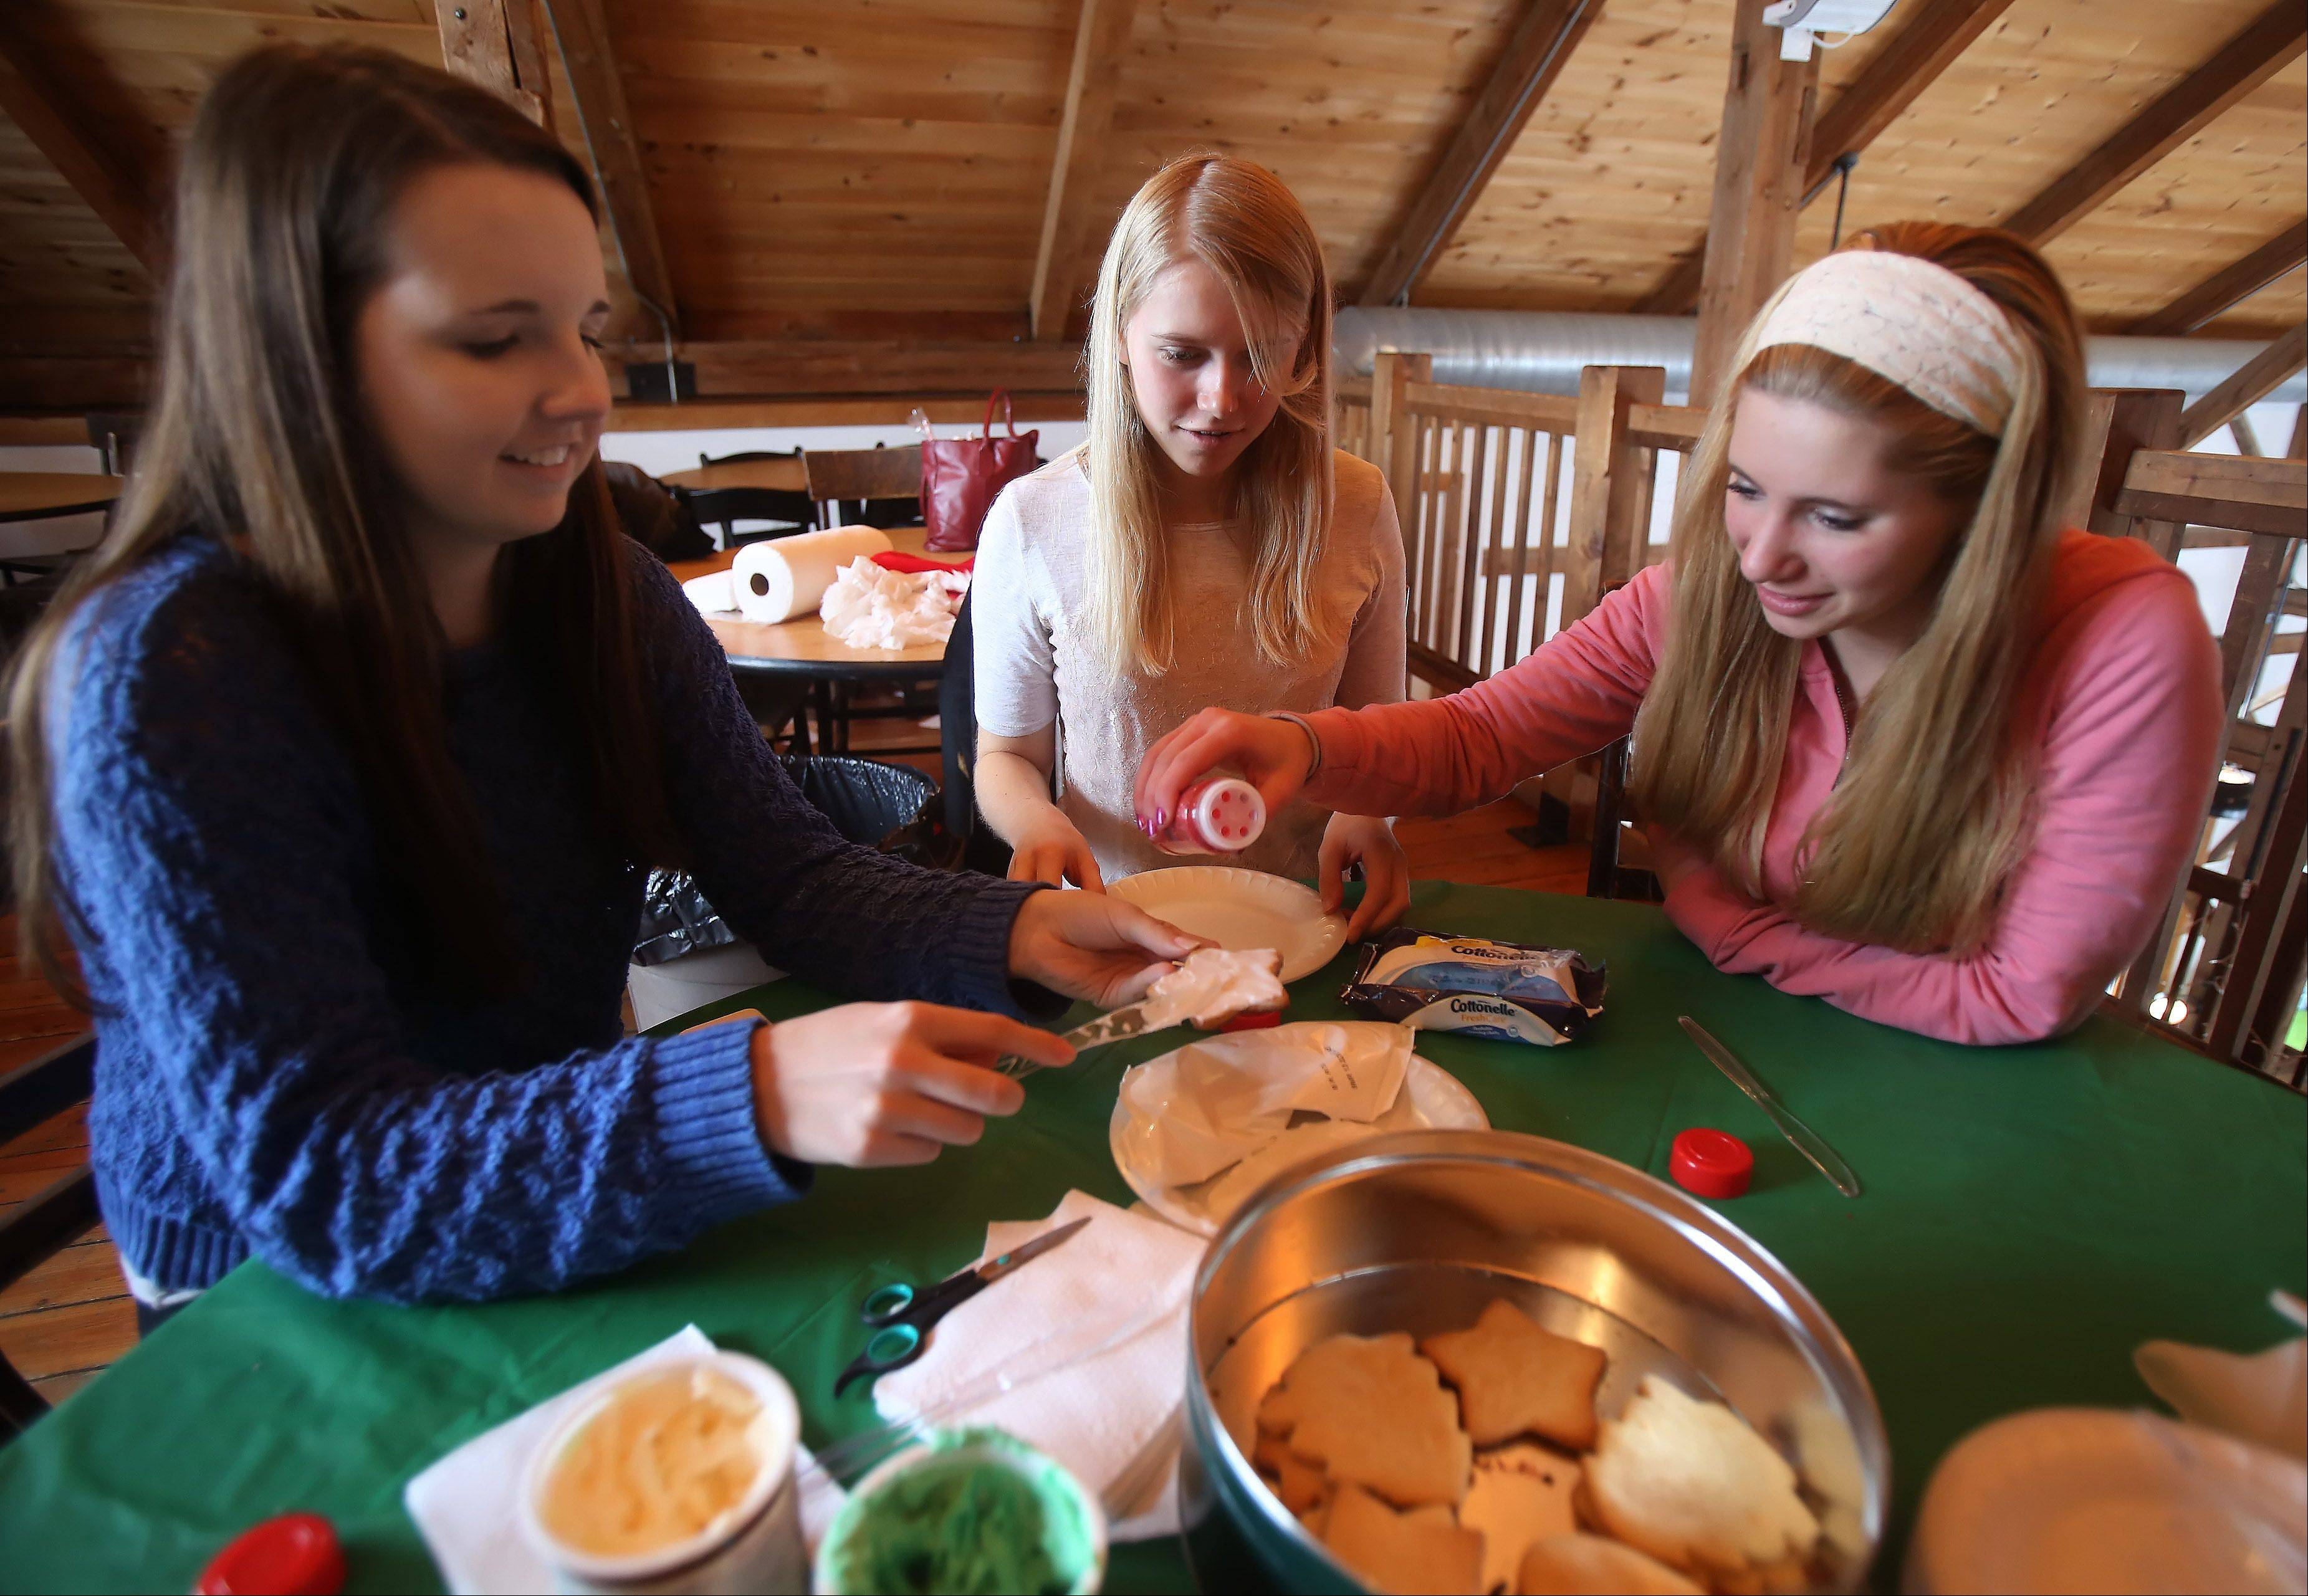 Amanda Jung, left, Hannah Dwinell and Rachel Biersdorf, all of Grayslake, decorate cookies in Santa's Workshop during the 18th annual Prairie Crossing Cookie Walk and Bake Sale Sunday at Byron Colby Barn in Grayslake. Visitors could choose from thousands of homemade cookies, as well as handmade gifts and unique items from local artisans and merchants.